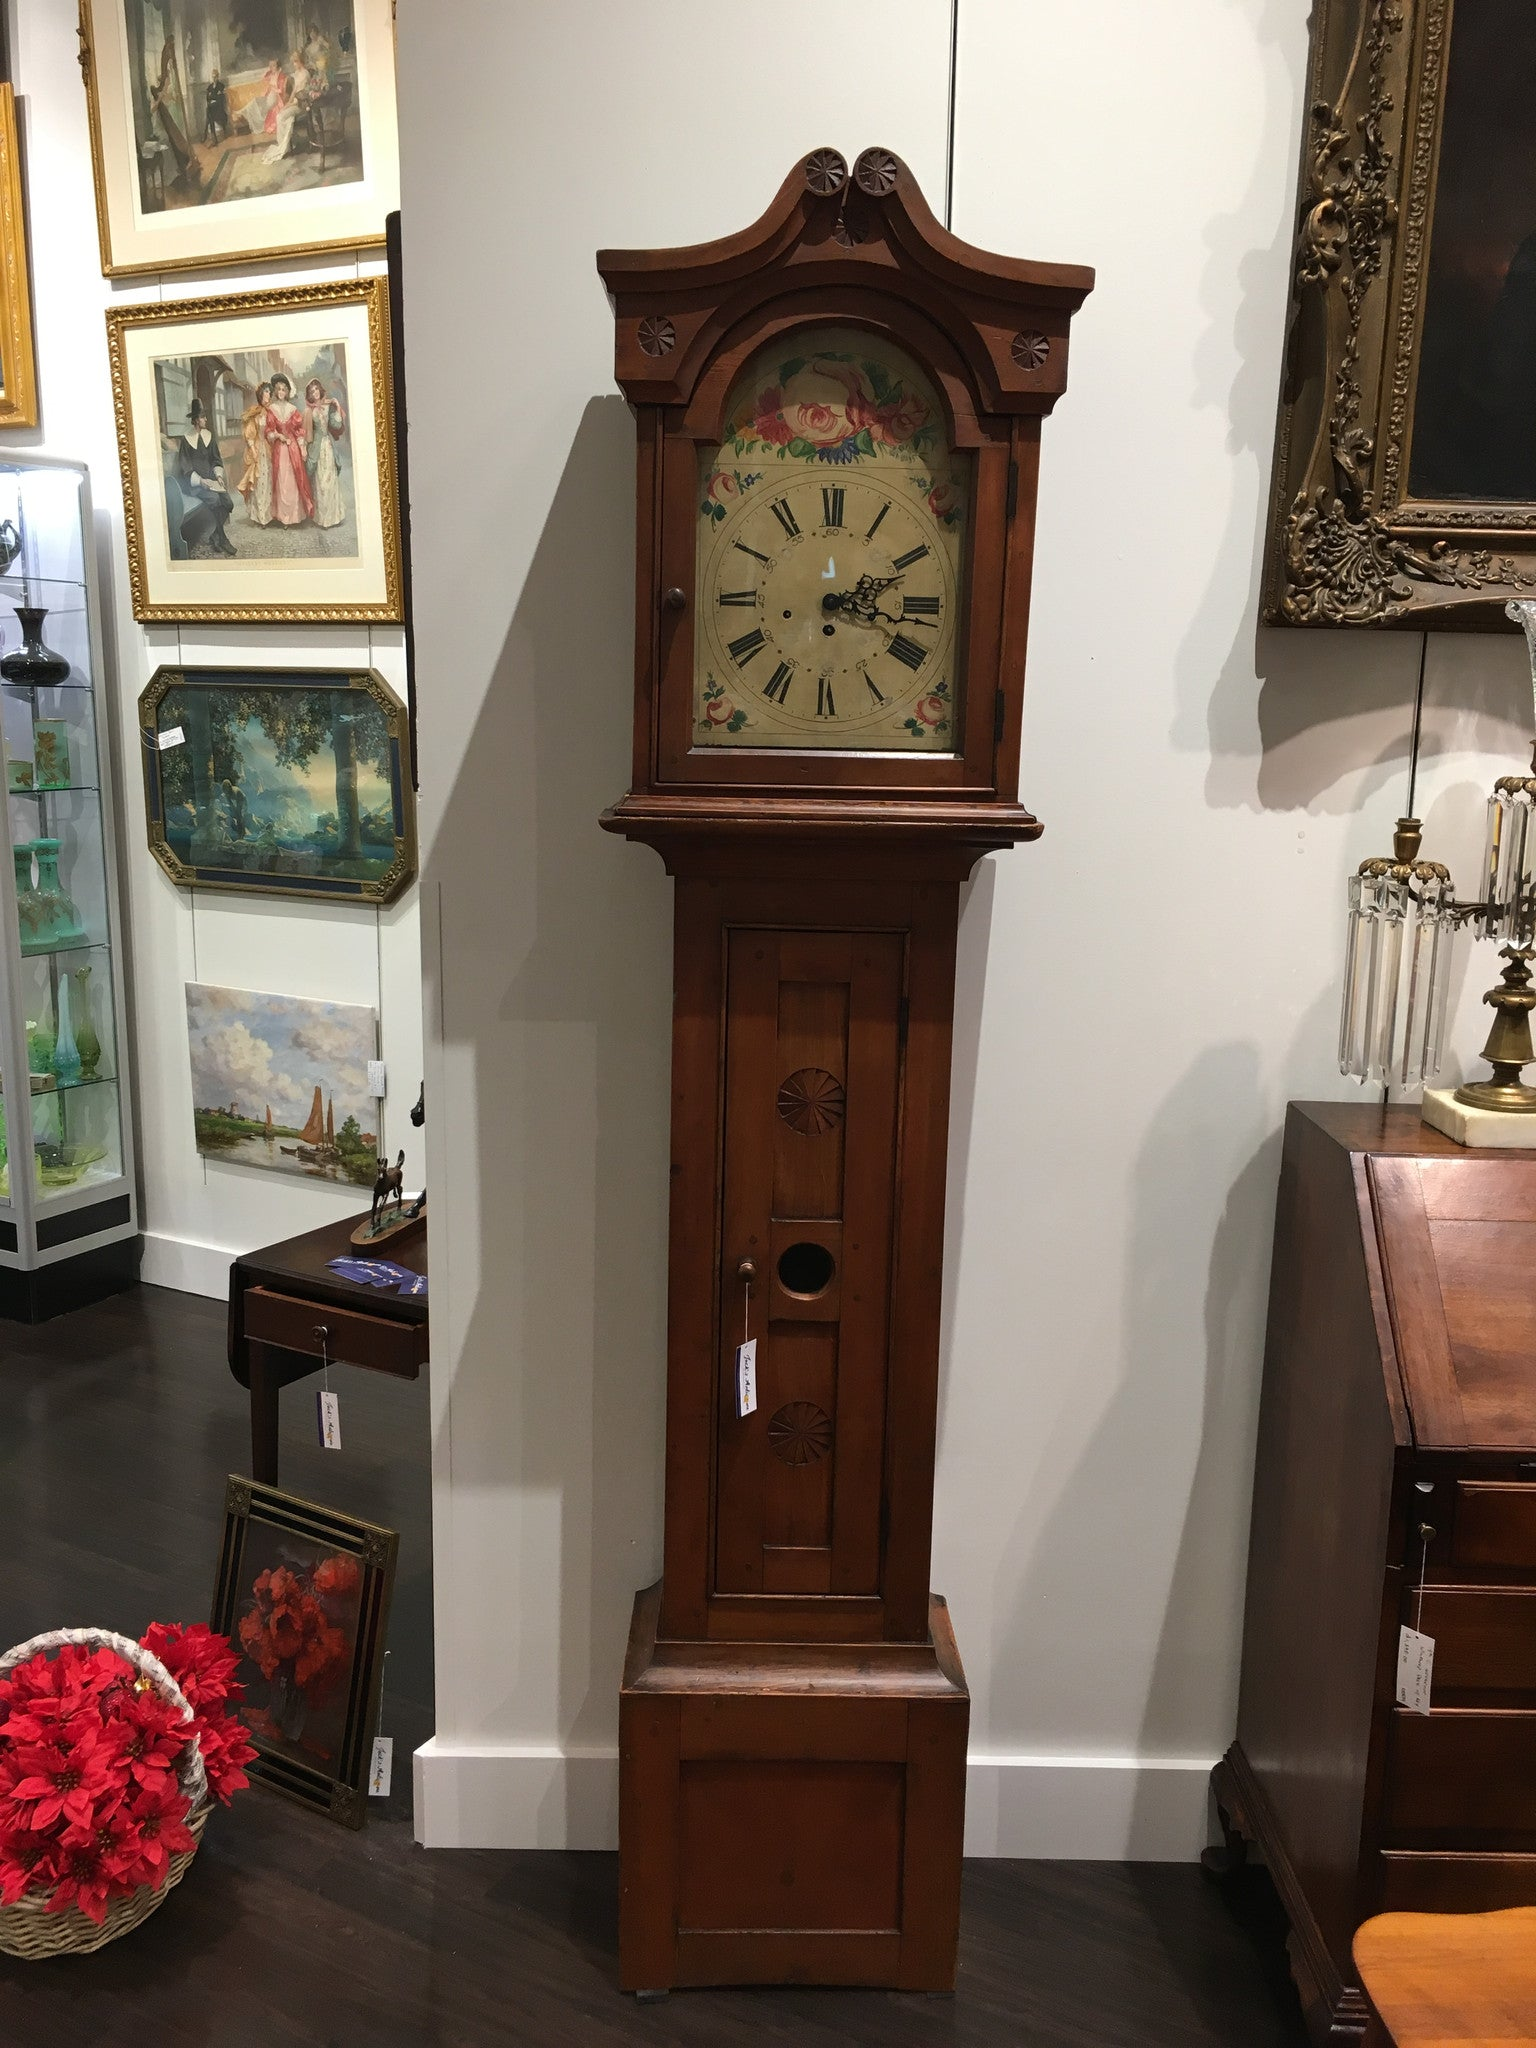 1837 Early American Grandfather Clock